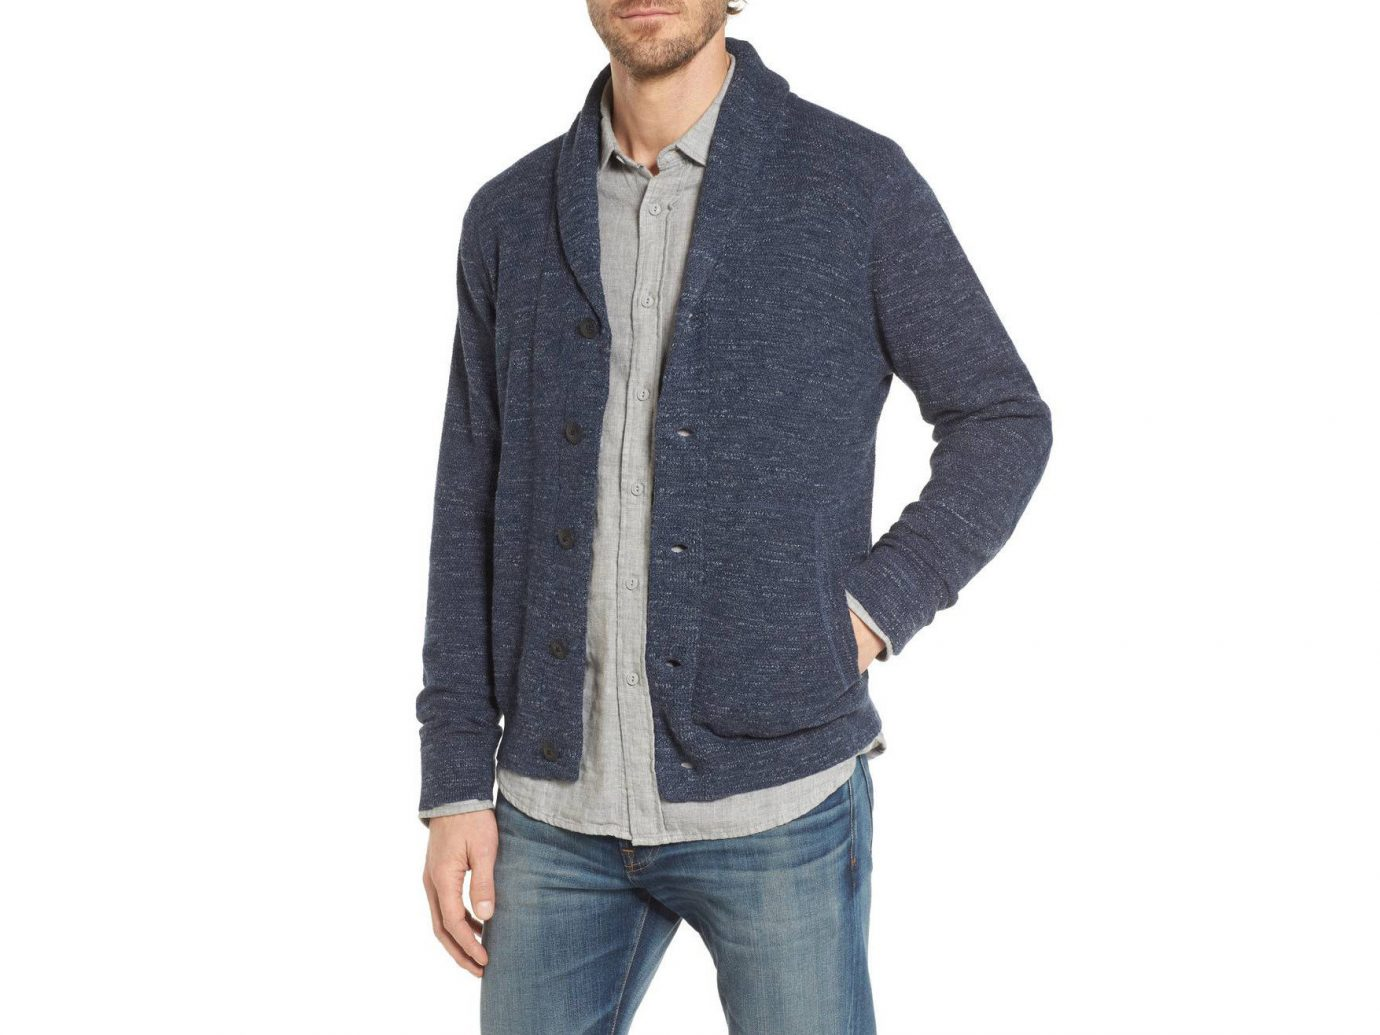 person man clothing standing cardigan sweater wearing woolen outerwear posing jacket sleeve neck jeans